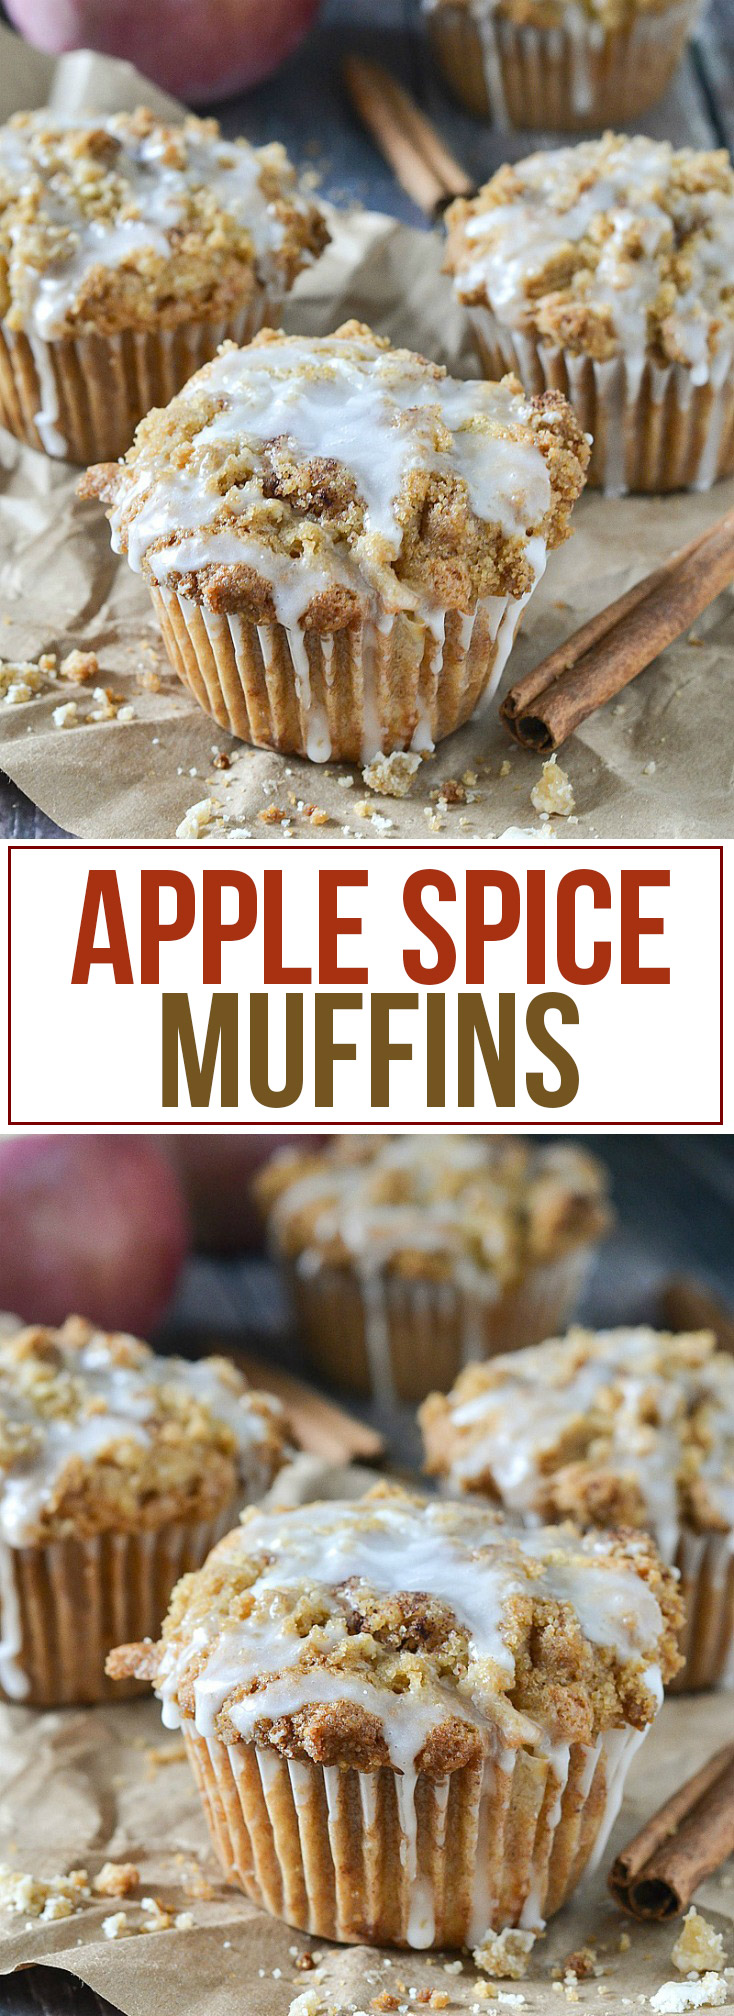 Apple Spice Muffins from www.motherthyme.com